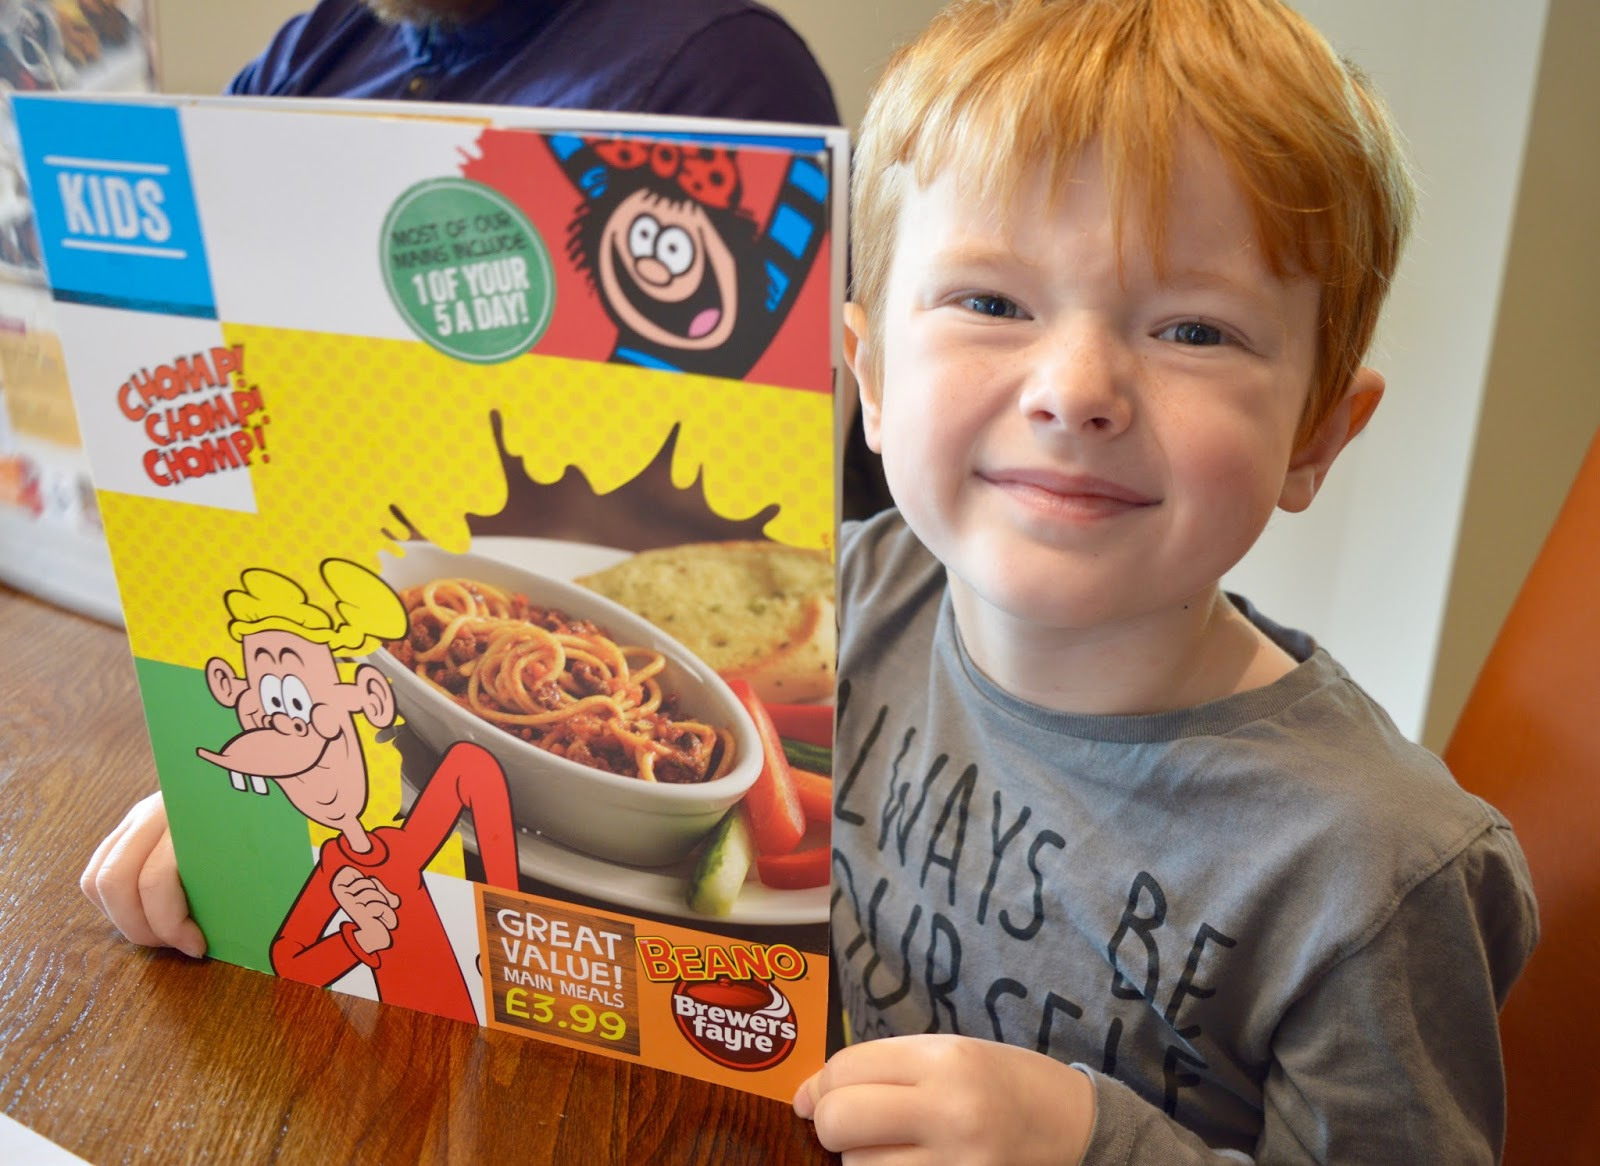 Derwent Crossing Brewers Fayre near intu Metrocentre | Play Area & Children's Menu Review - Beano children's menu